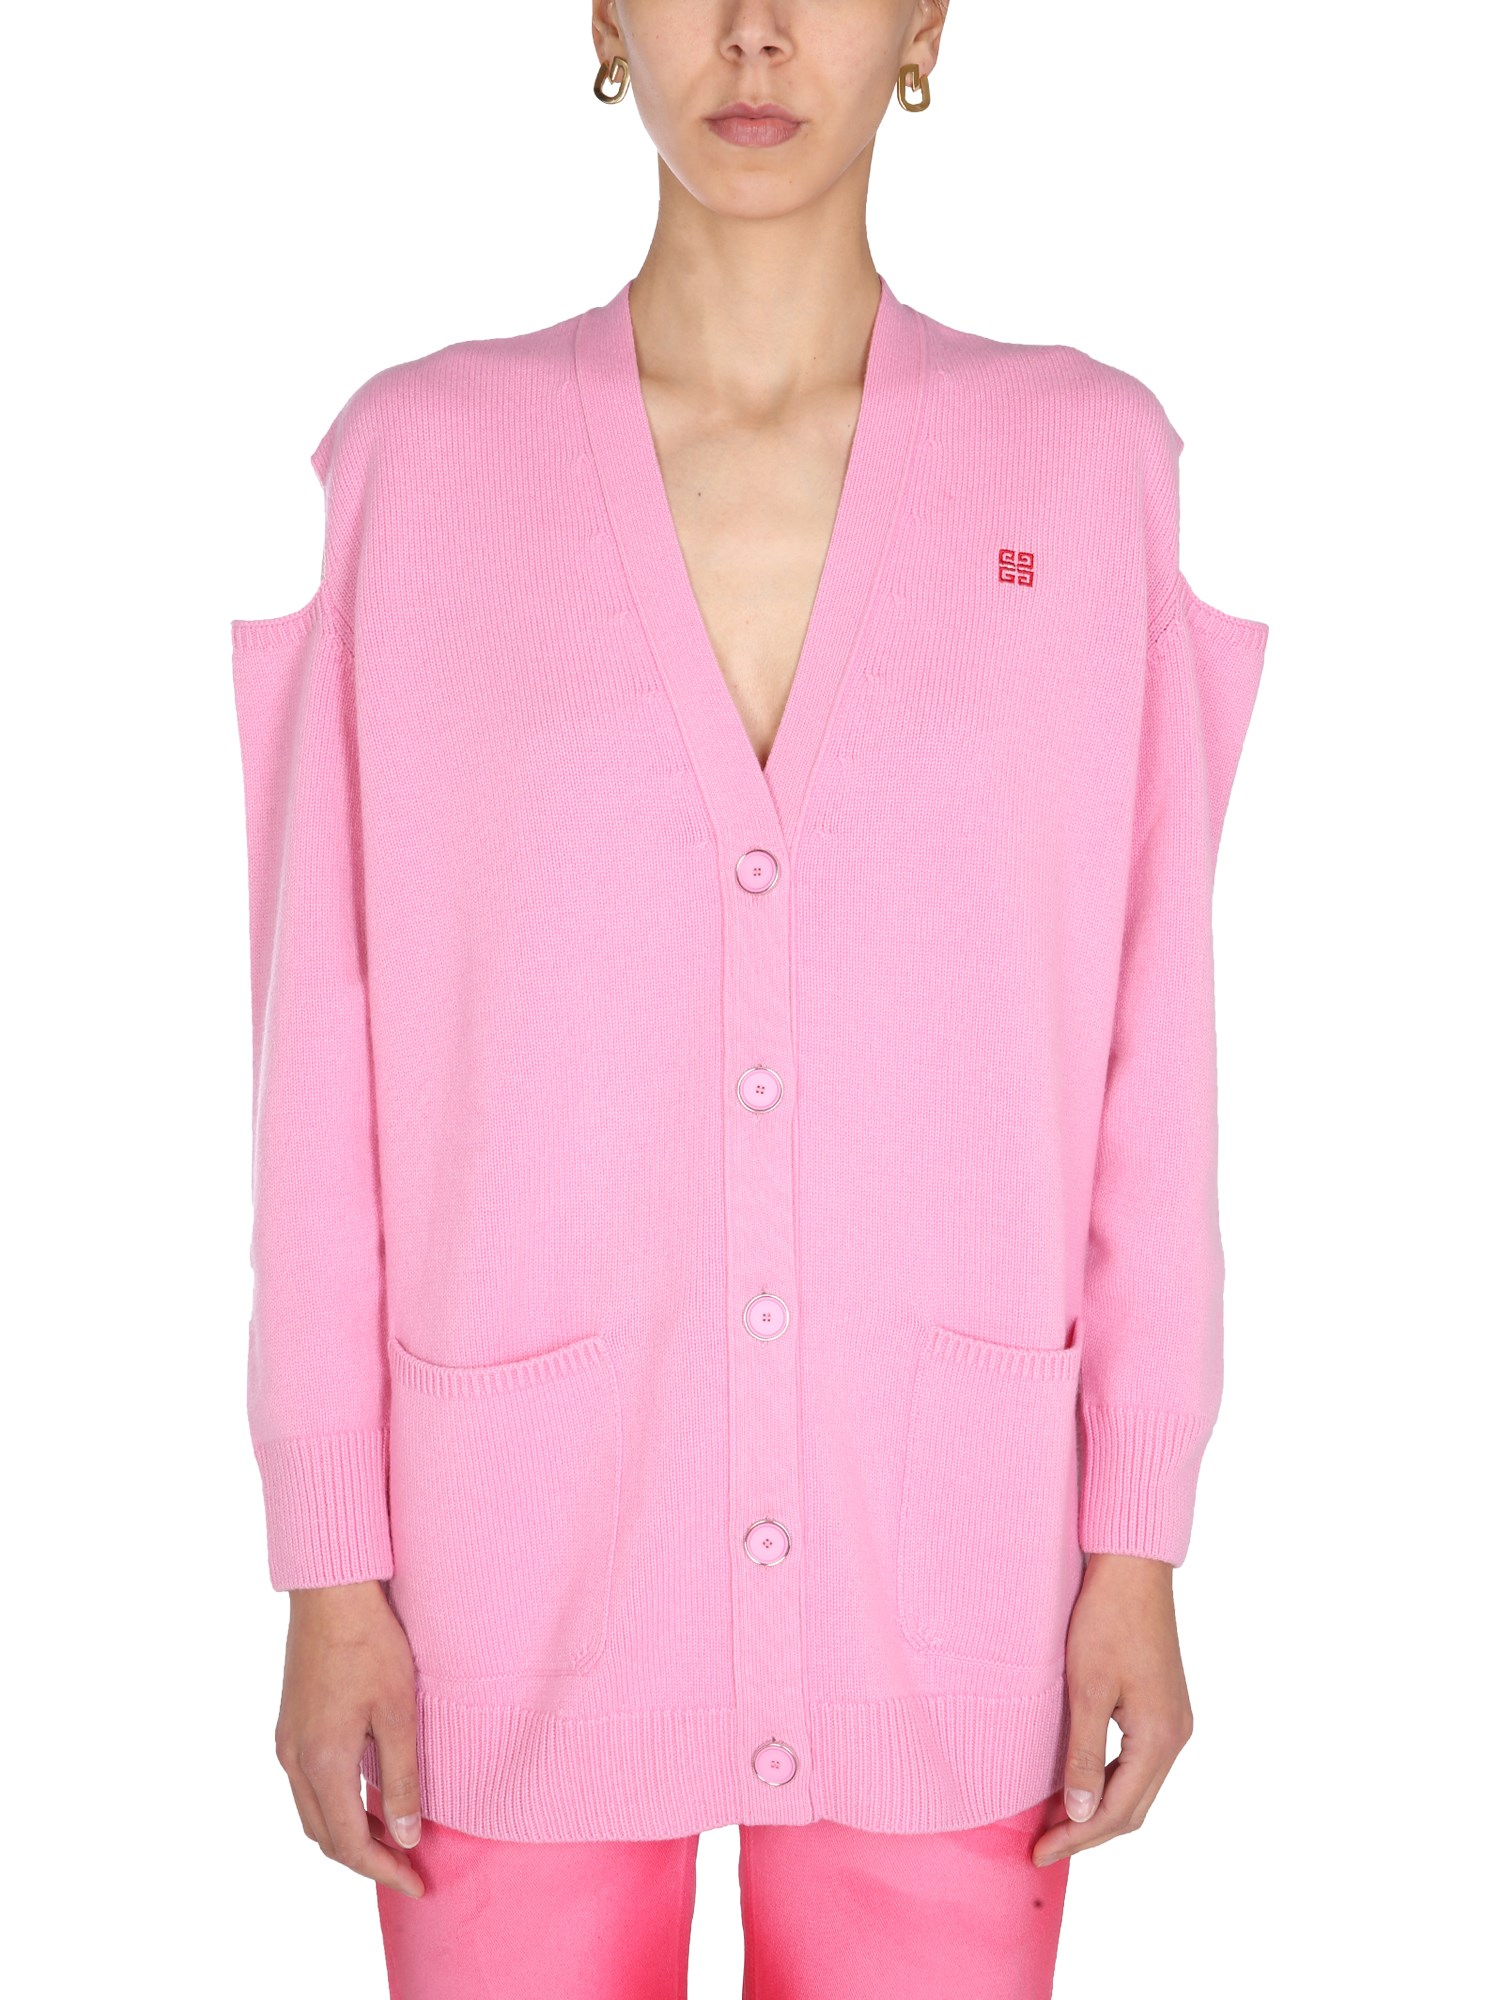 Givenchy Cardigans CUT OUT DETAILS CARDIGAN